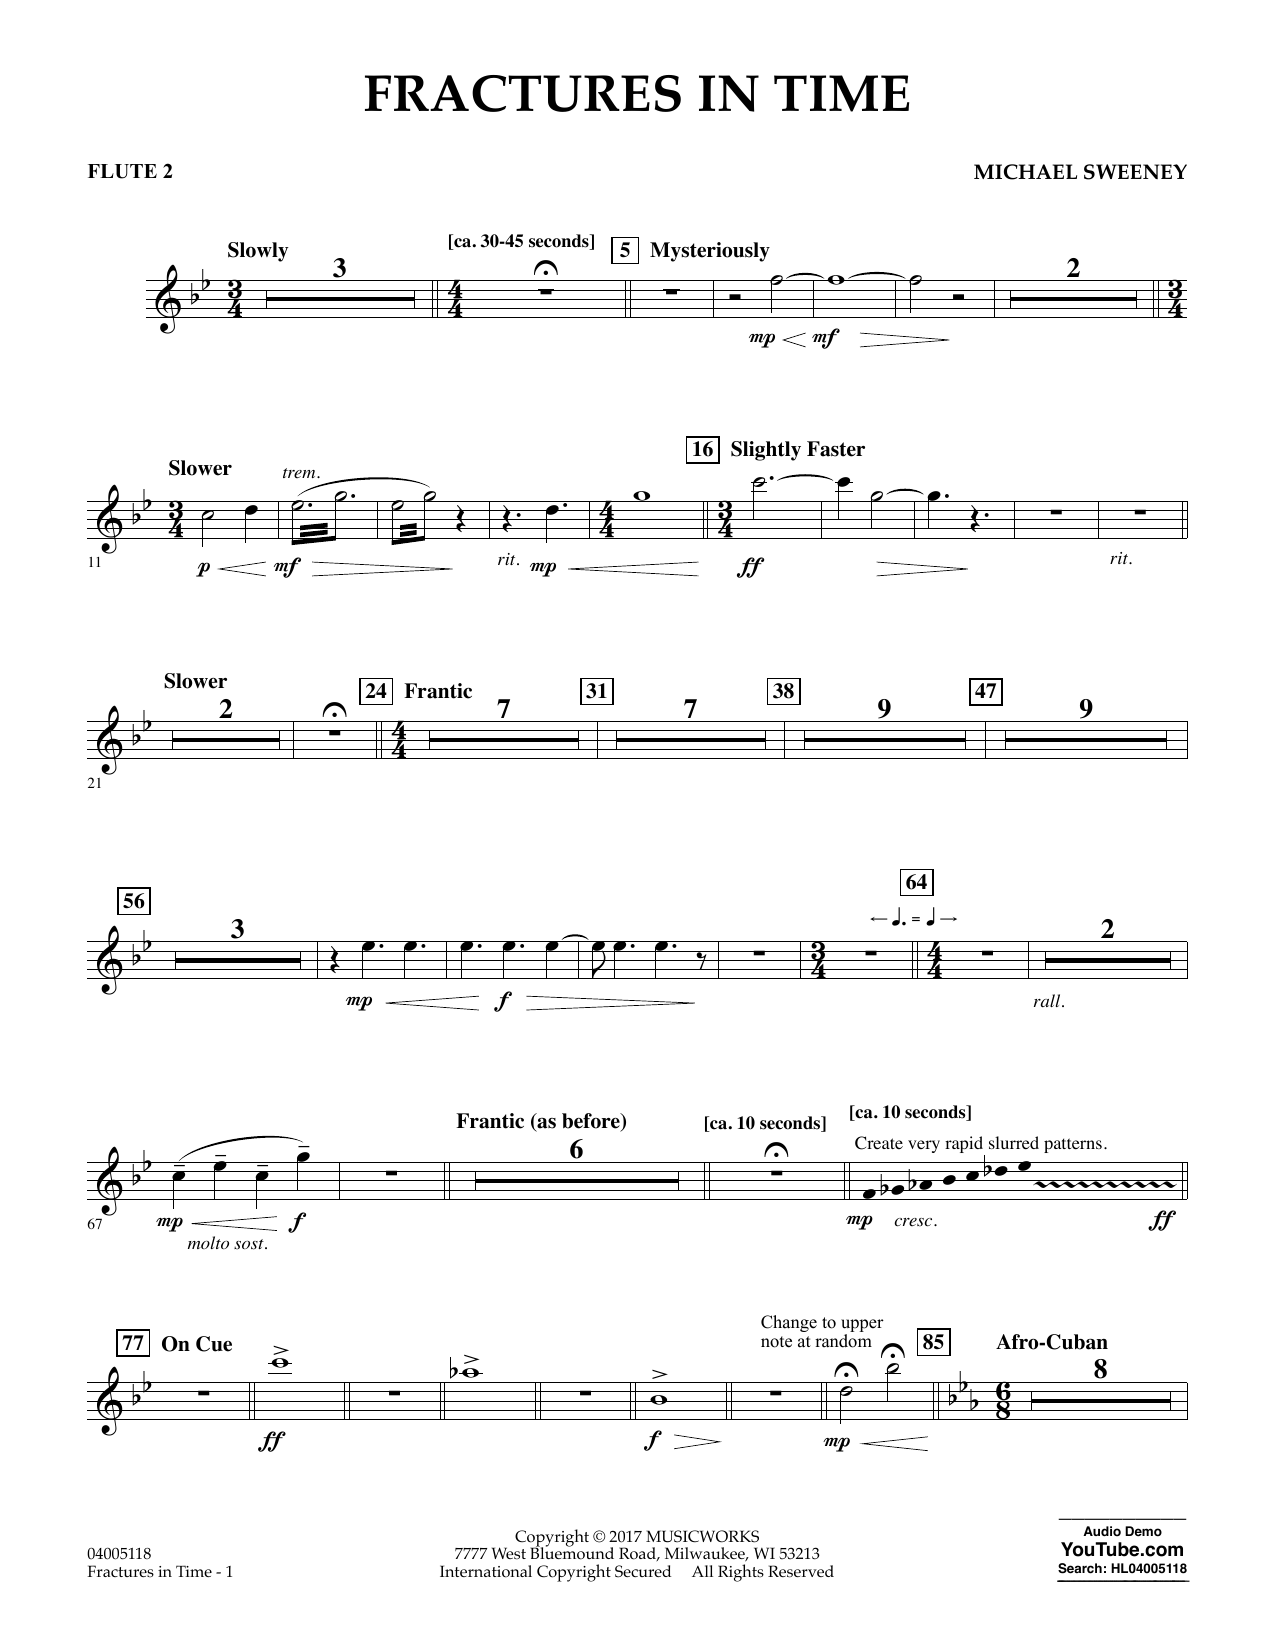 Fractures in Time - Flute 2 Sheet Music